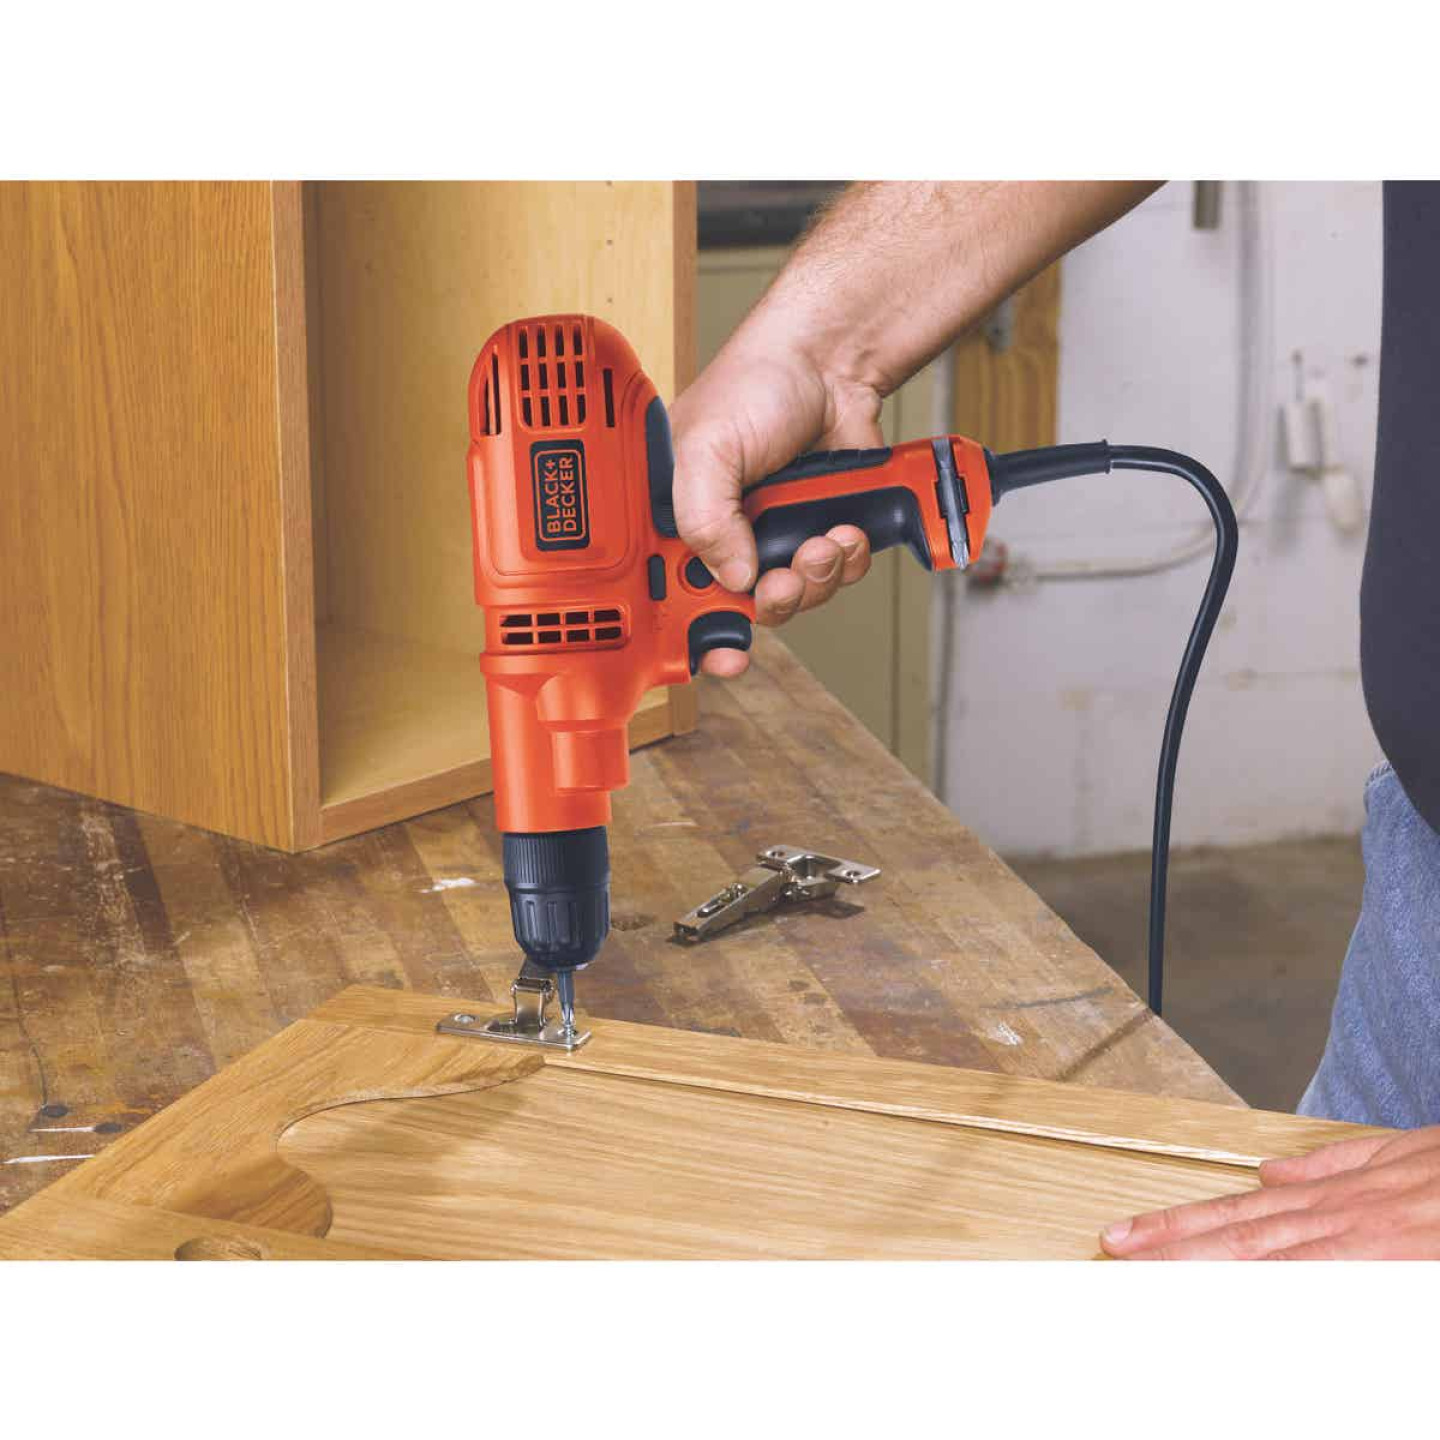 Black & Decker 3/8 In. 5.2-Amp Keyless Electric Drill/Driver Image 4